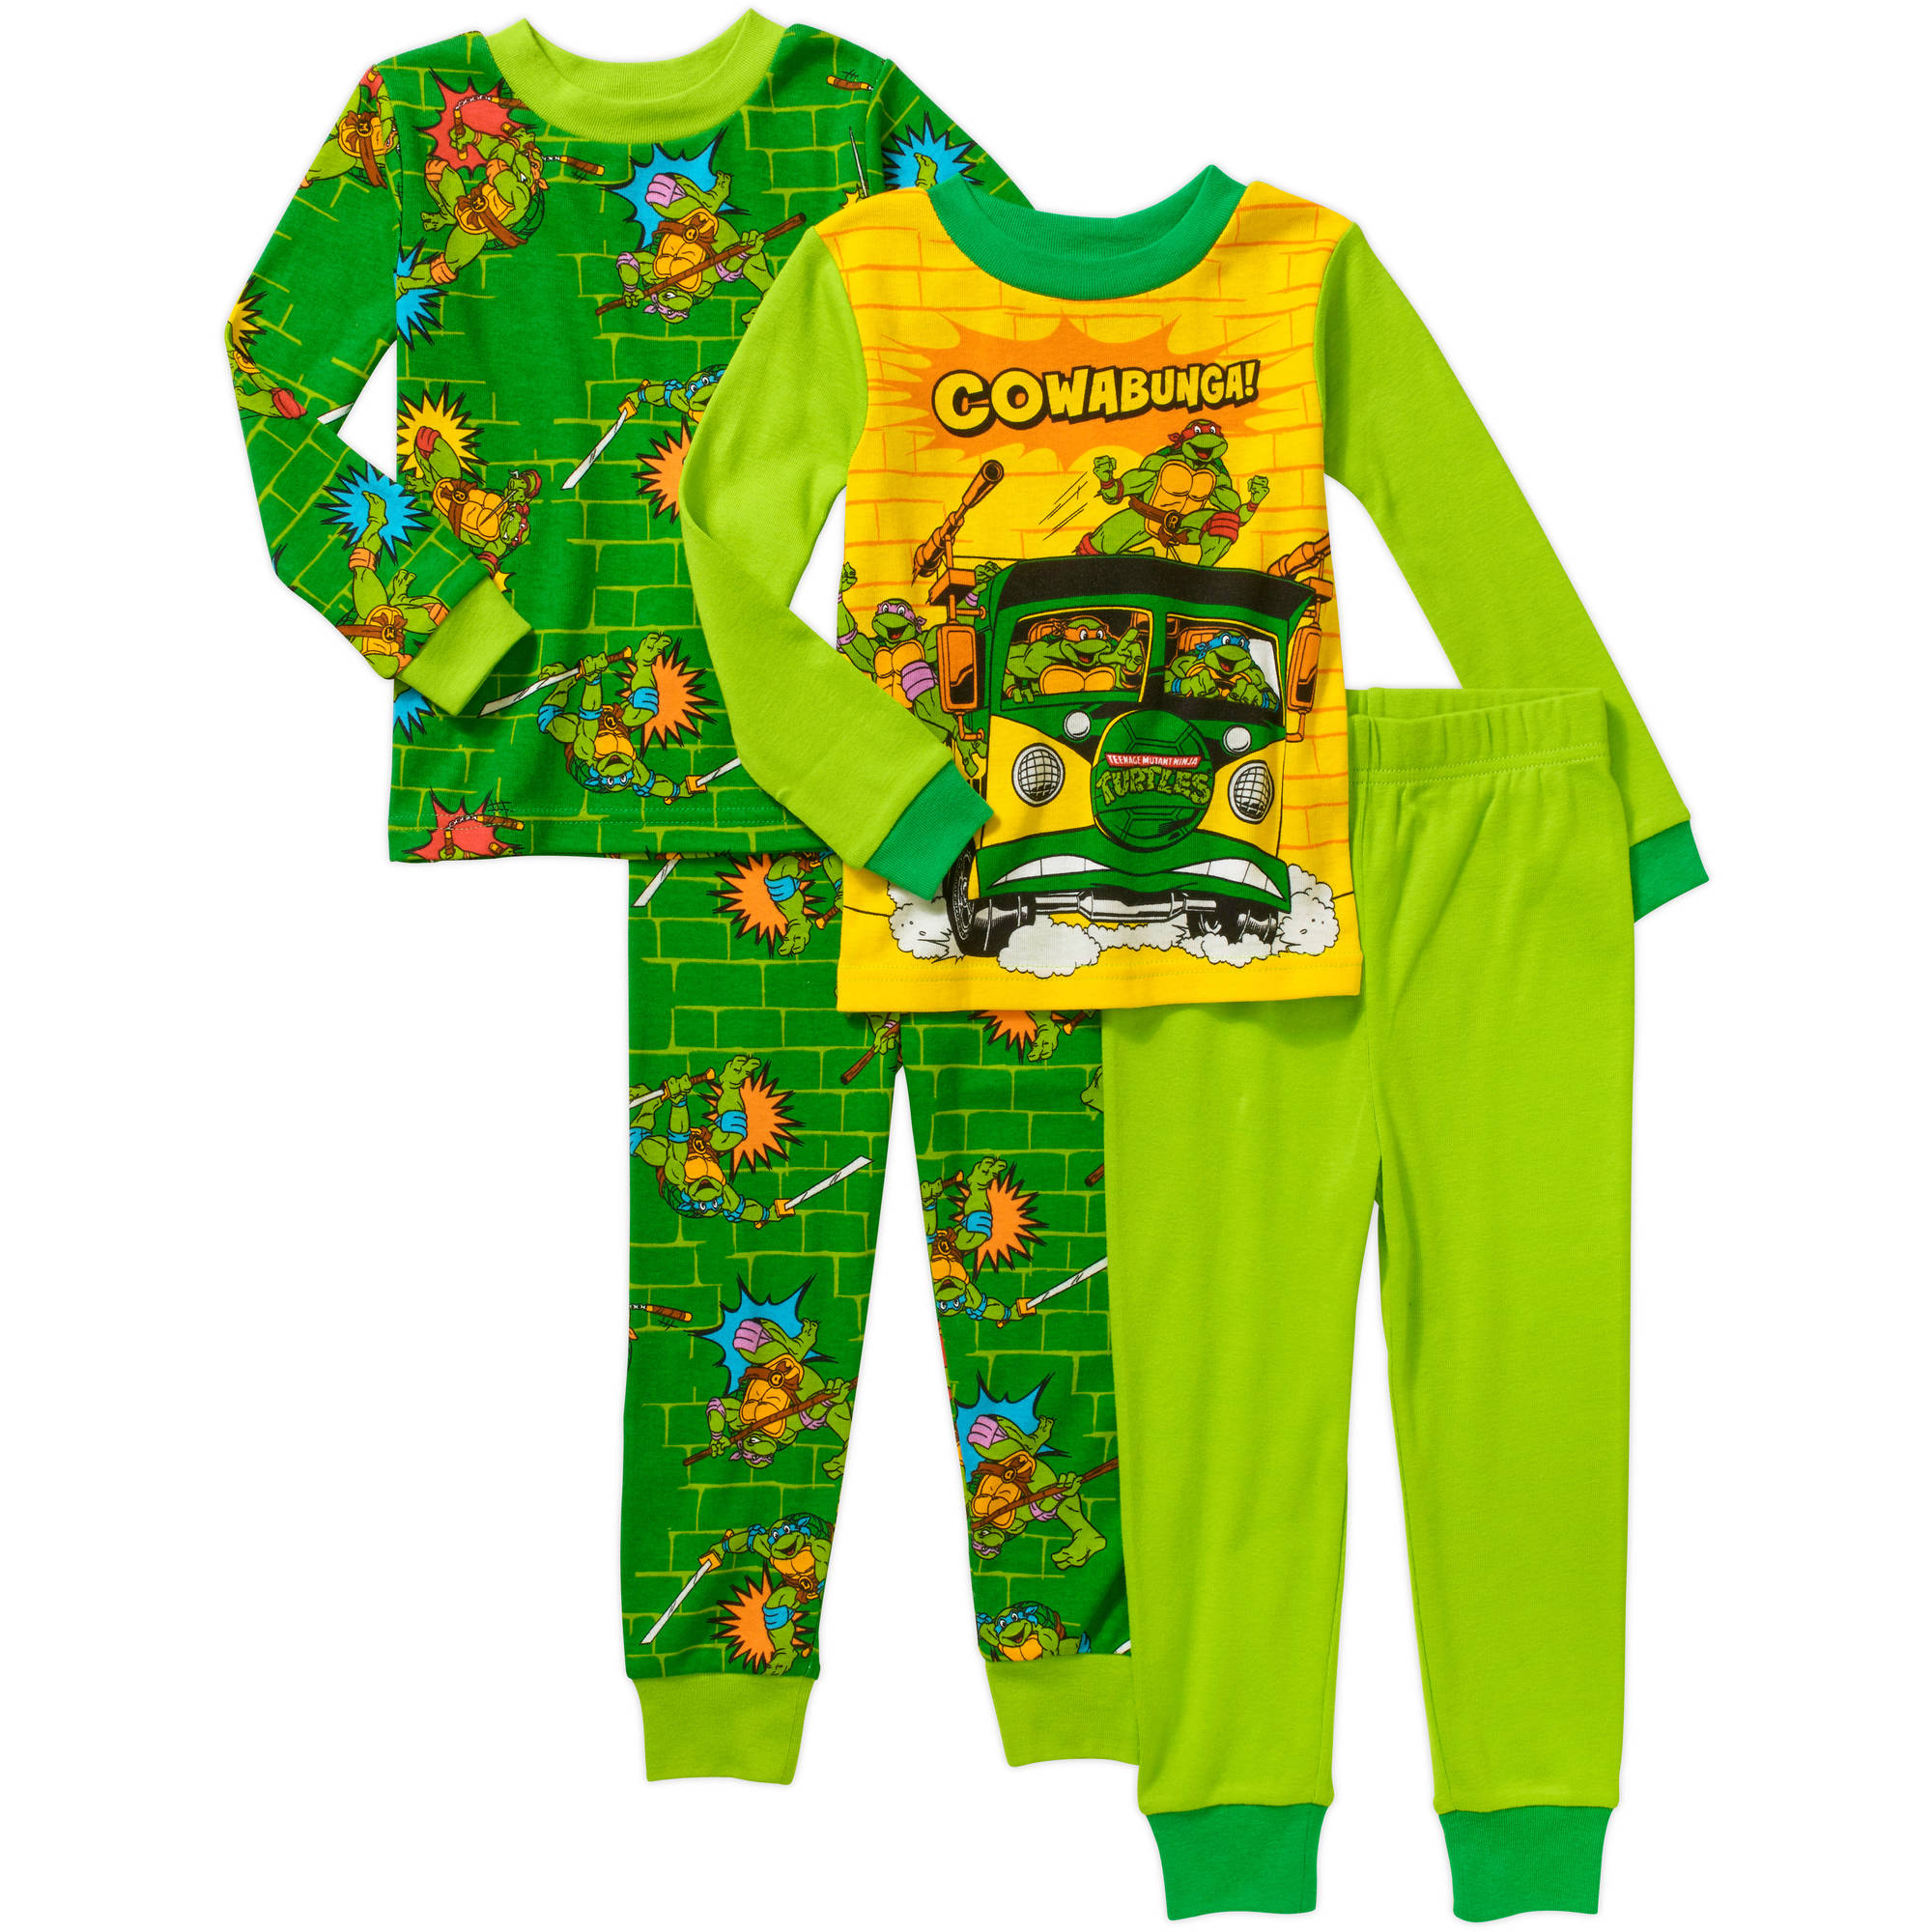 Teenage Mutant Ninja Turtles Baby Toddler Boy Cotton Tight-Fit Pajamas, 4-Piece Mix and Match Set